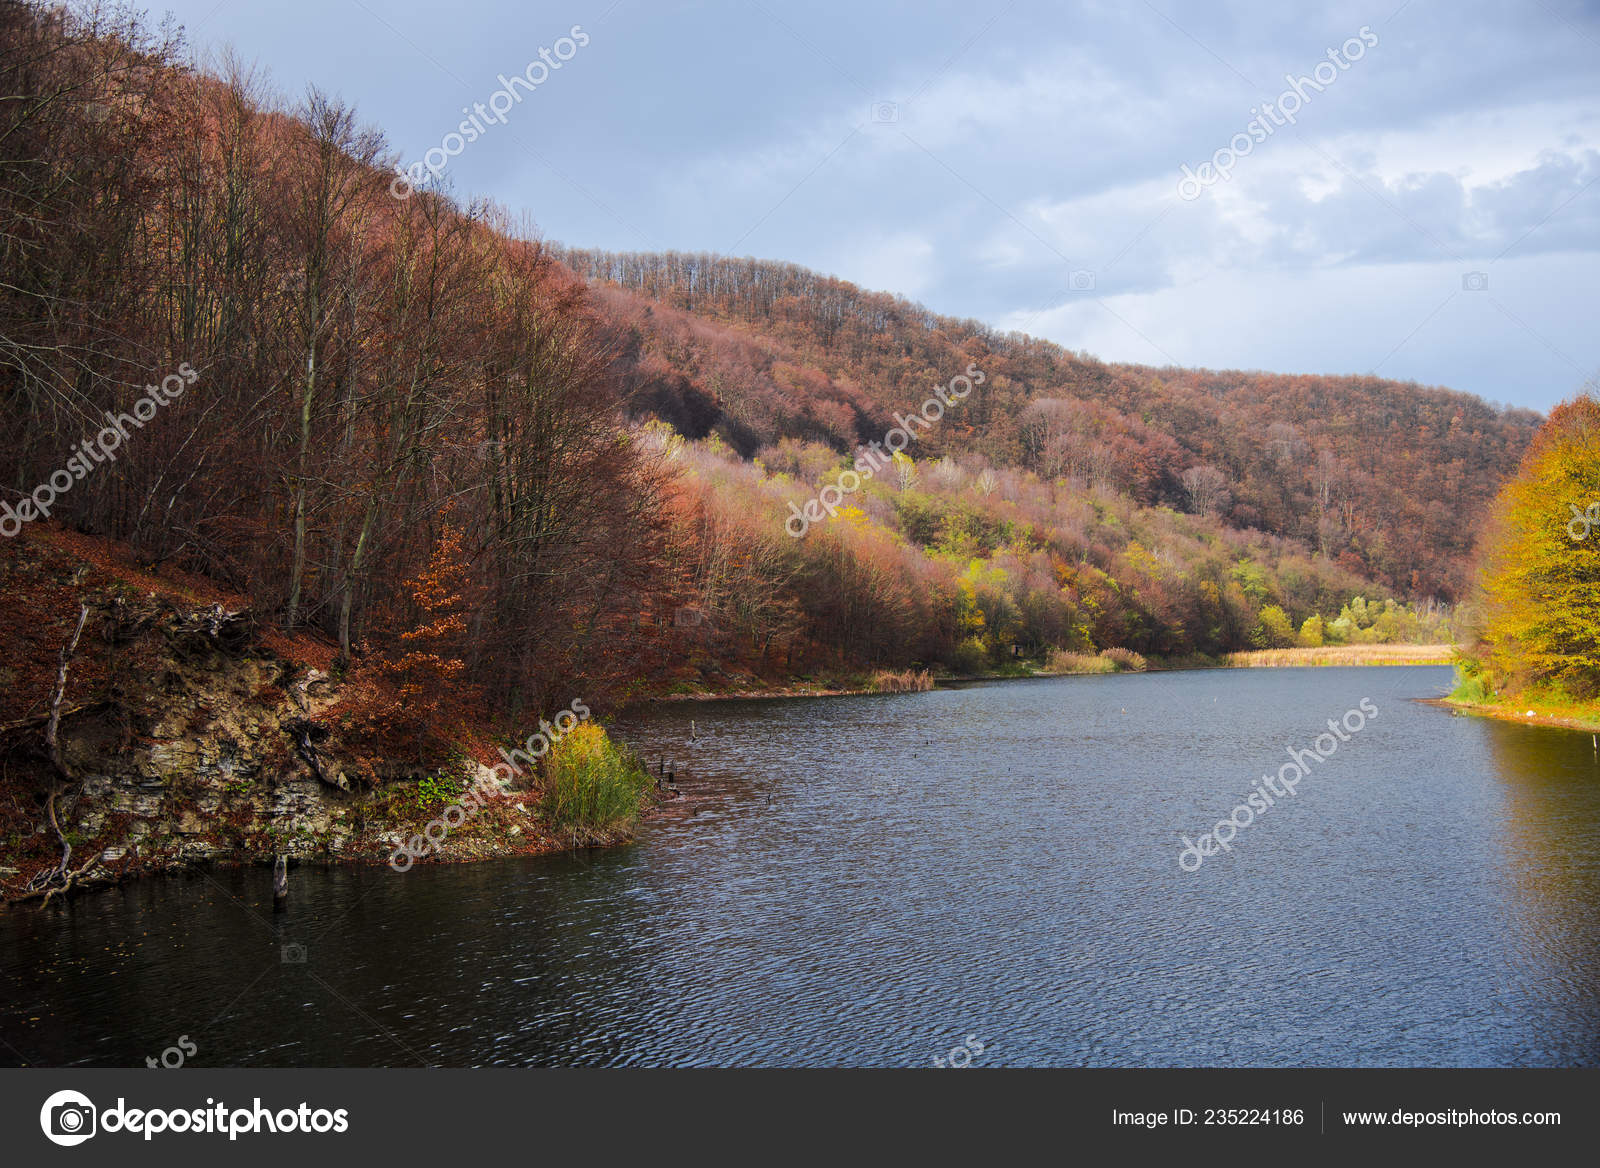 Awesome Nature View River Mountain Background Stock Photo